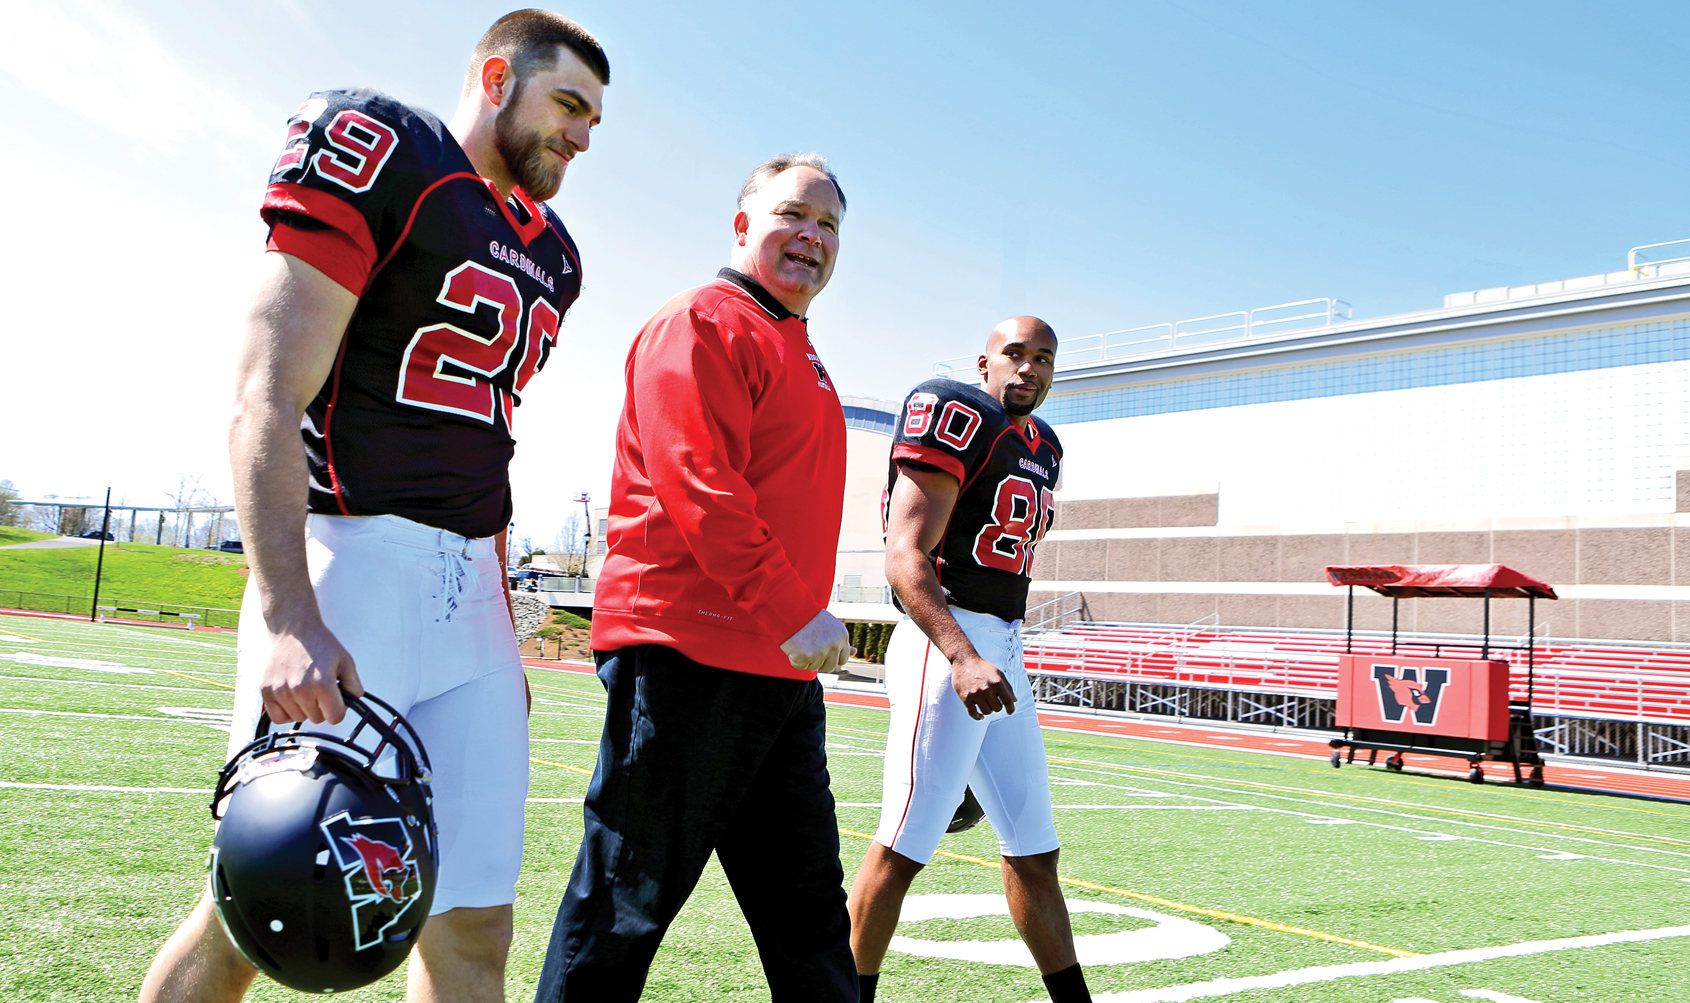 Coach Whalen focuses on Wesleyan's tradition of excellence to build a winning team.